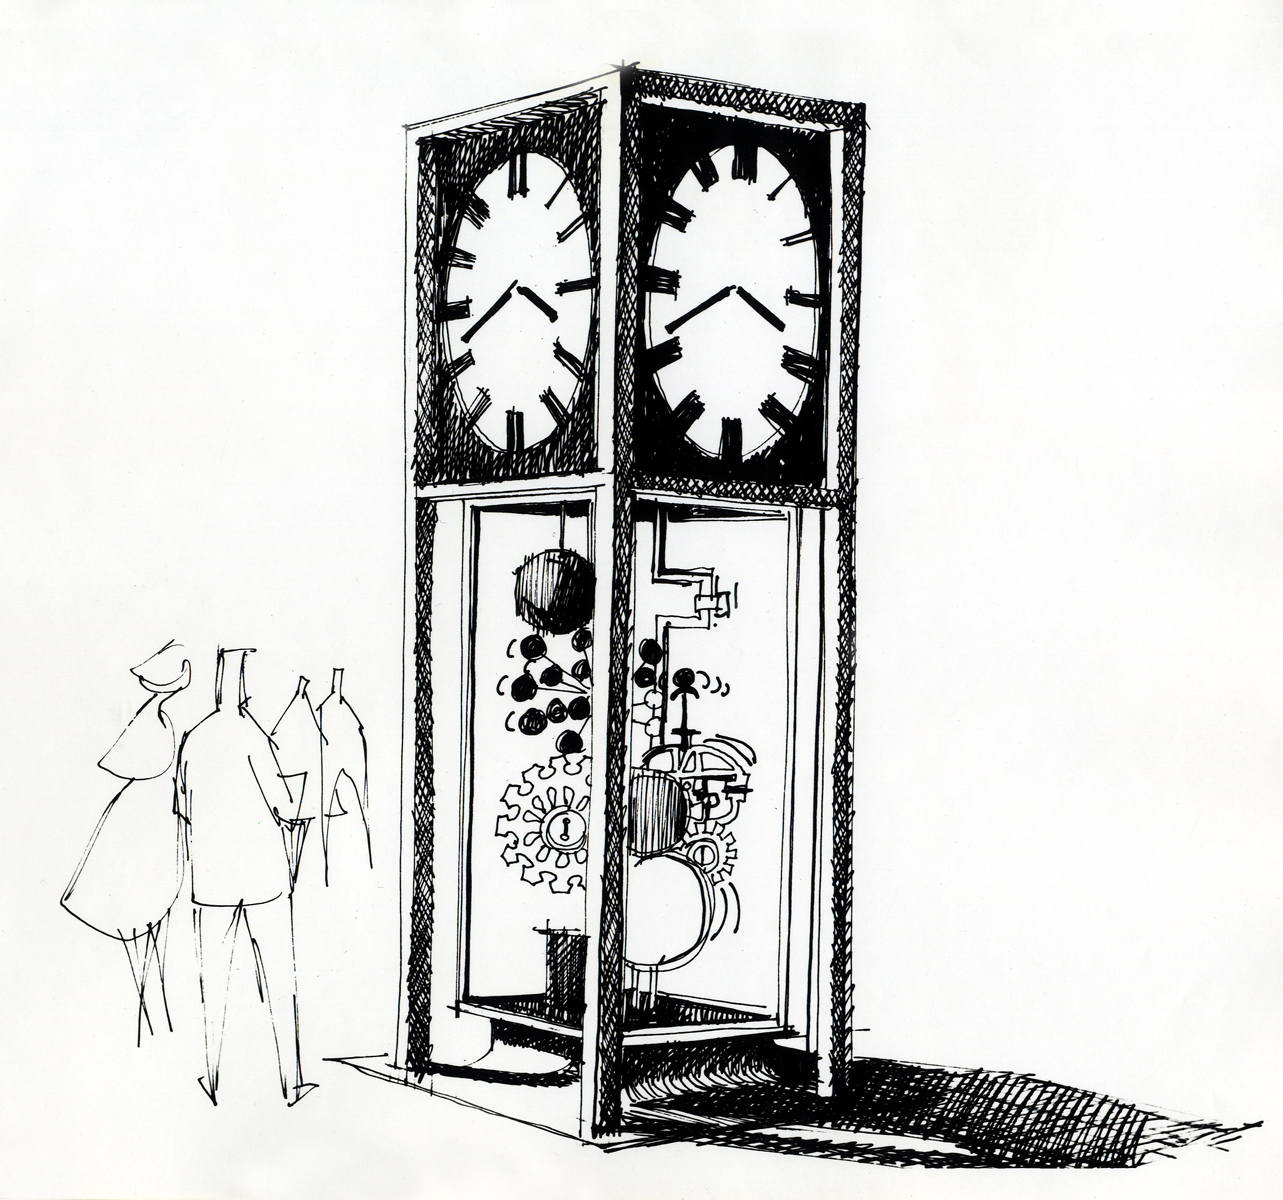 Sketch by Jack Nelson for the Sculpture Clock